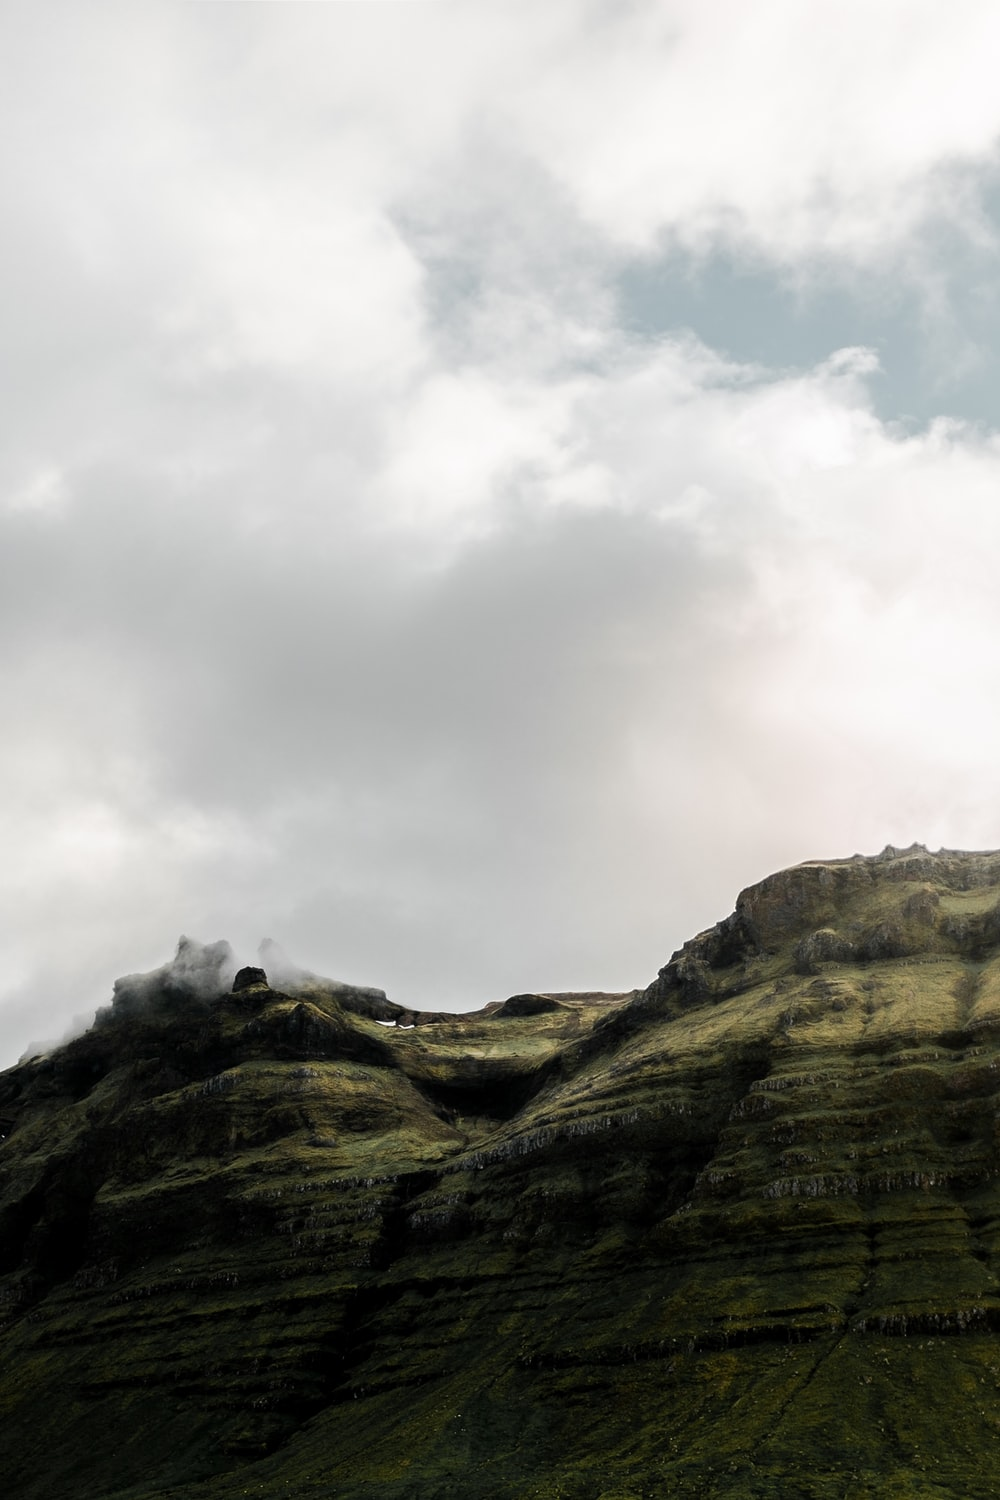 mountain under cloudy sky during daytime